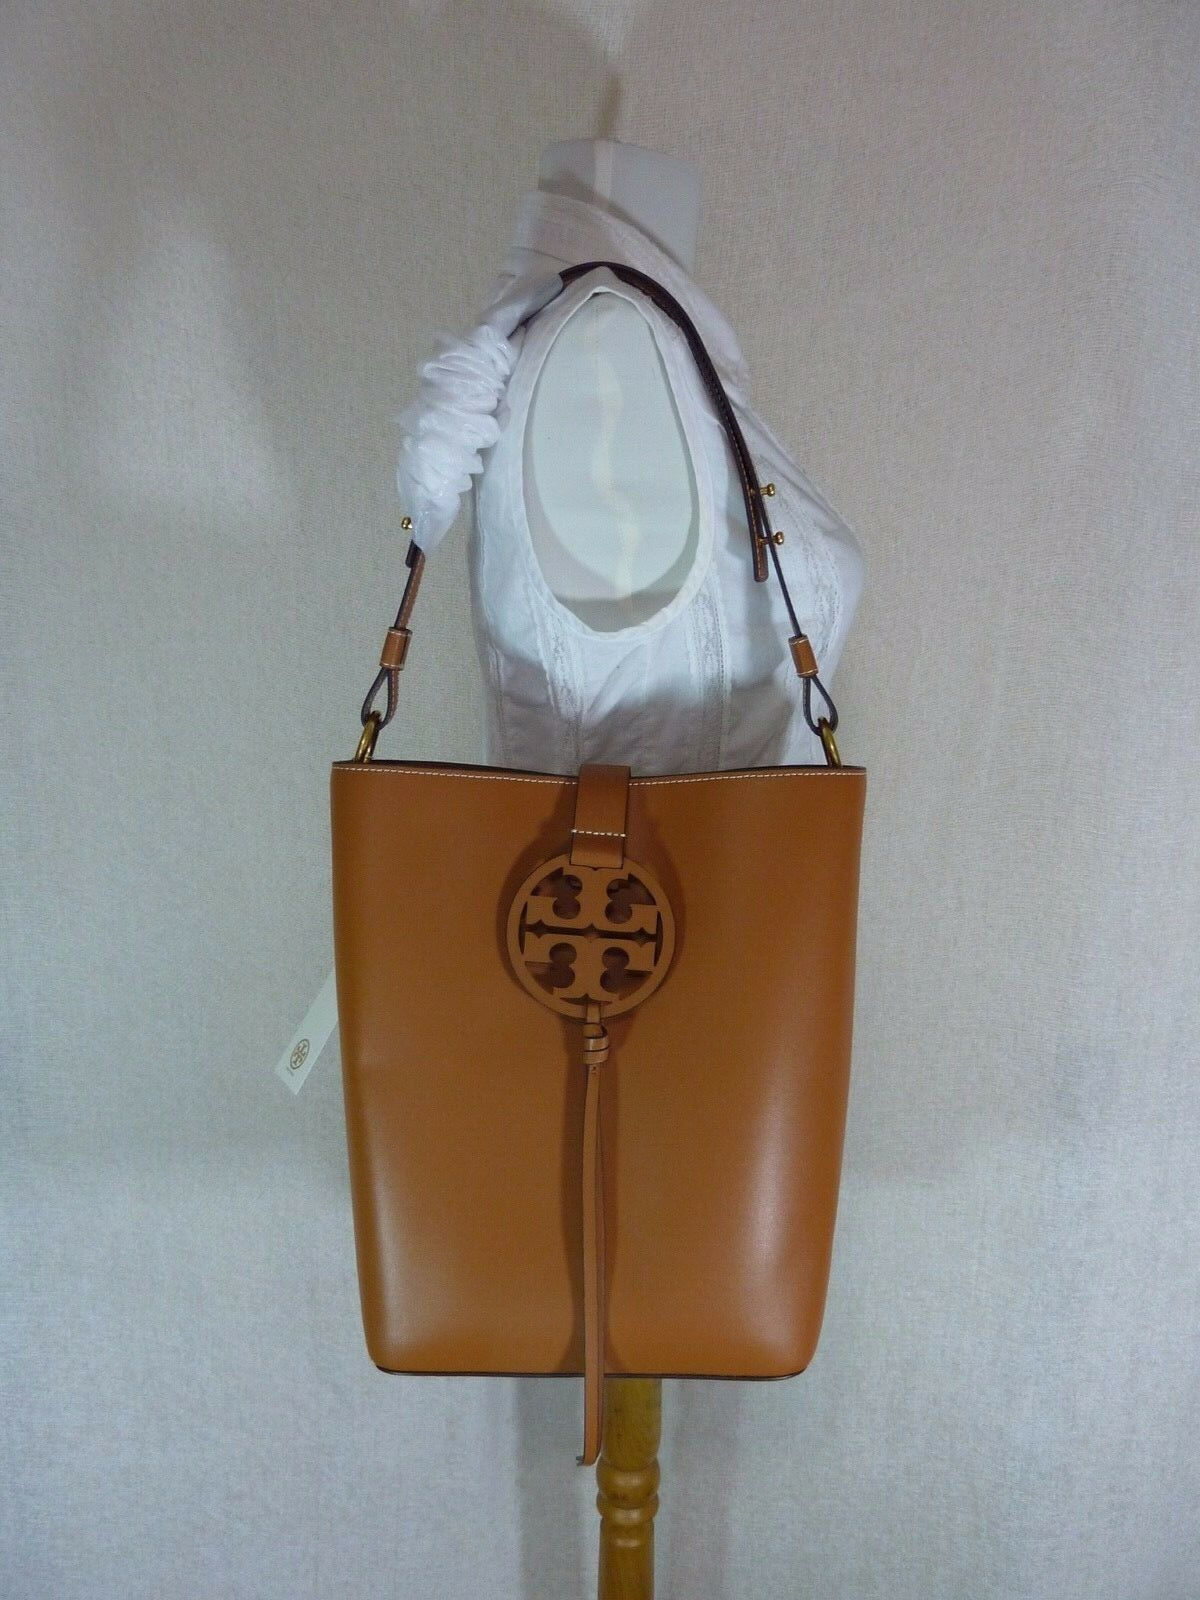 NWT Tory Burch Aged Camello Miller Hobo/Shoulder Tote $458 - Minor Imperfection